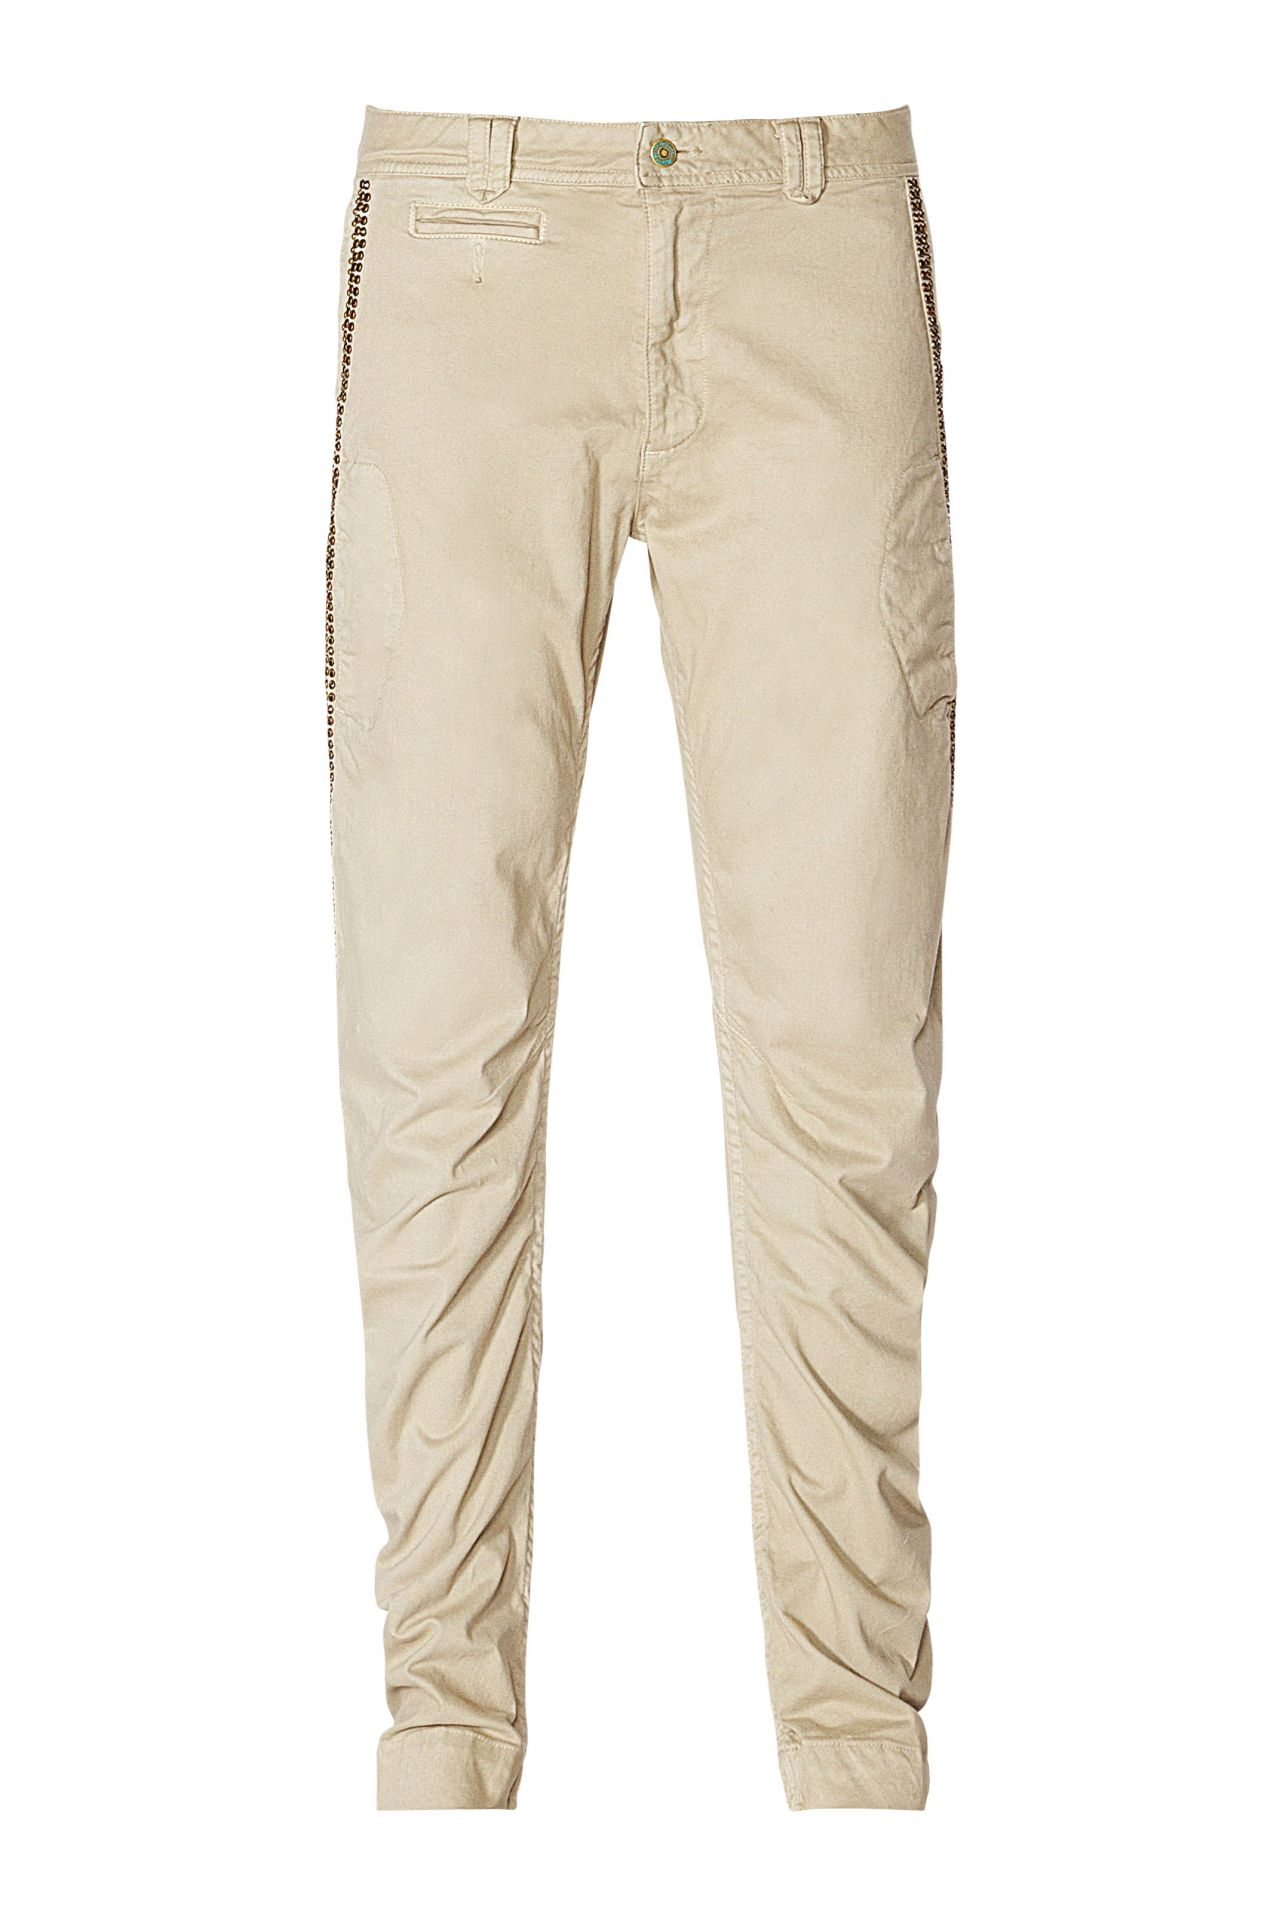 CHINO IN KHAKI WITH CRYSTALS